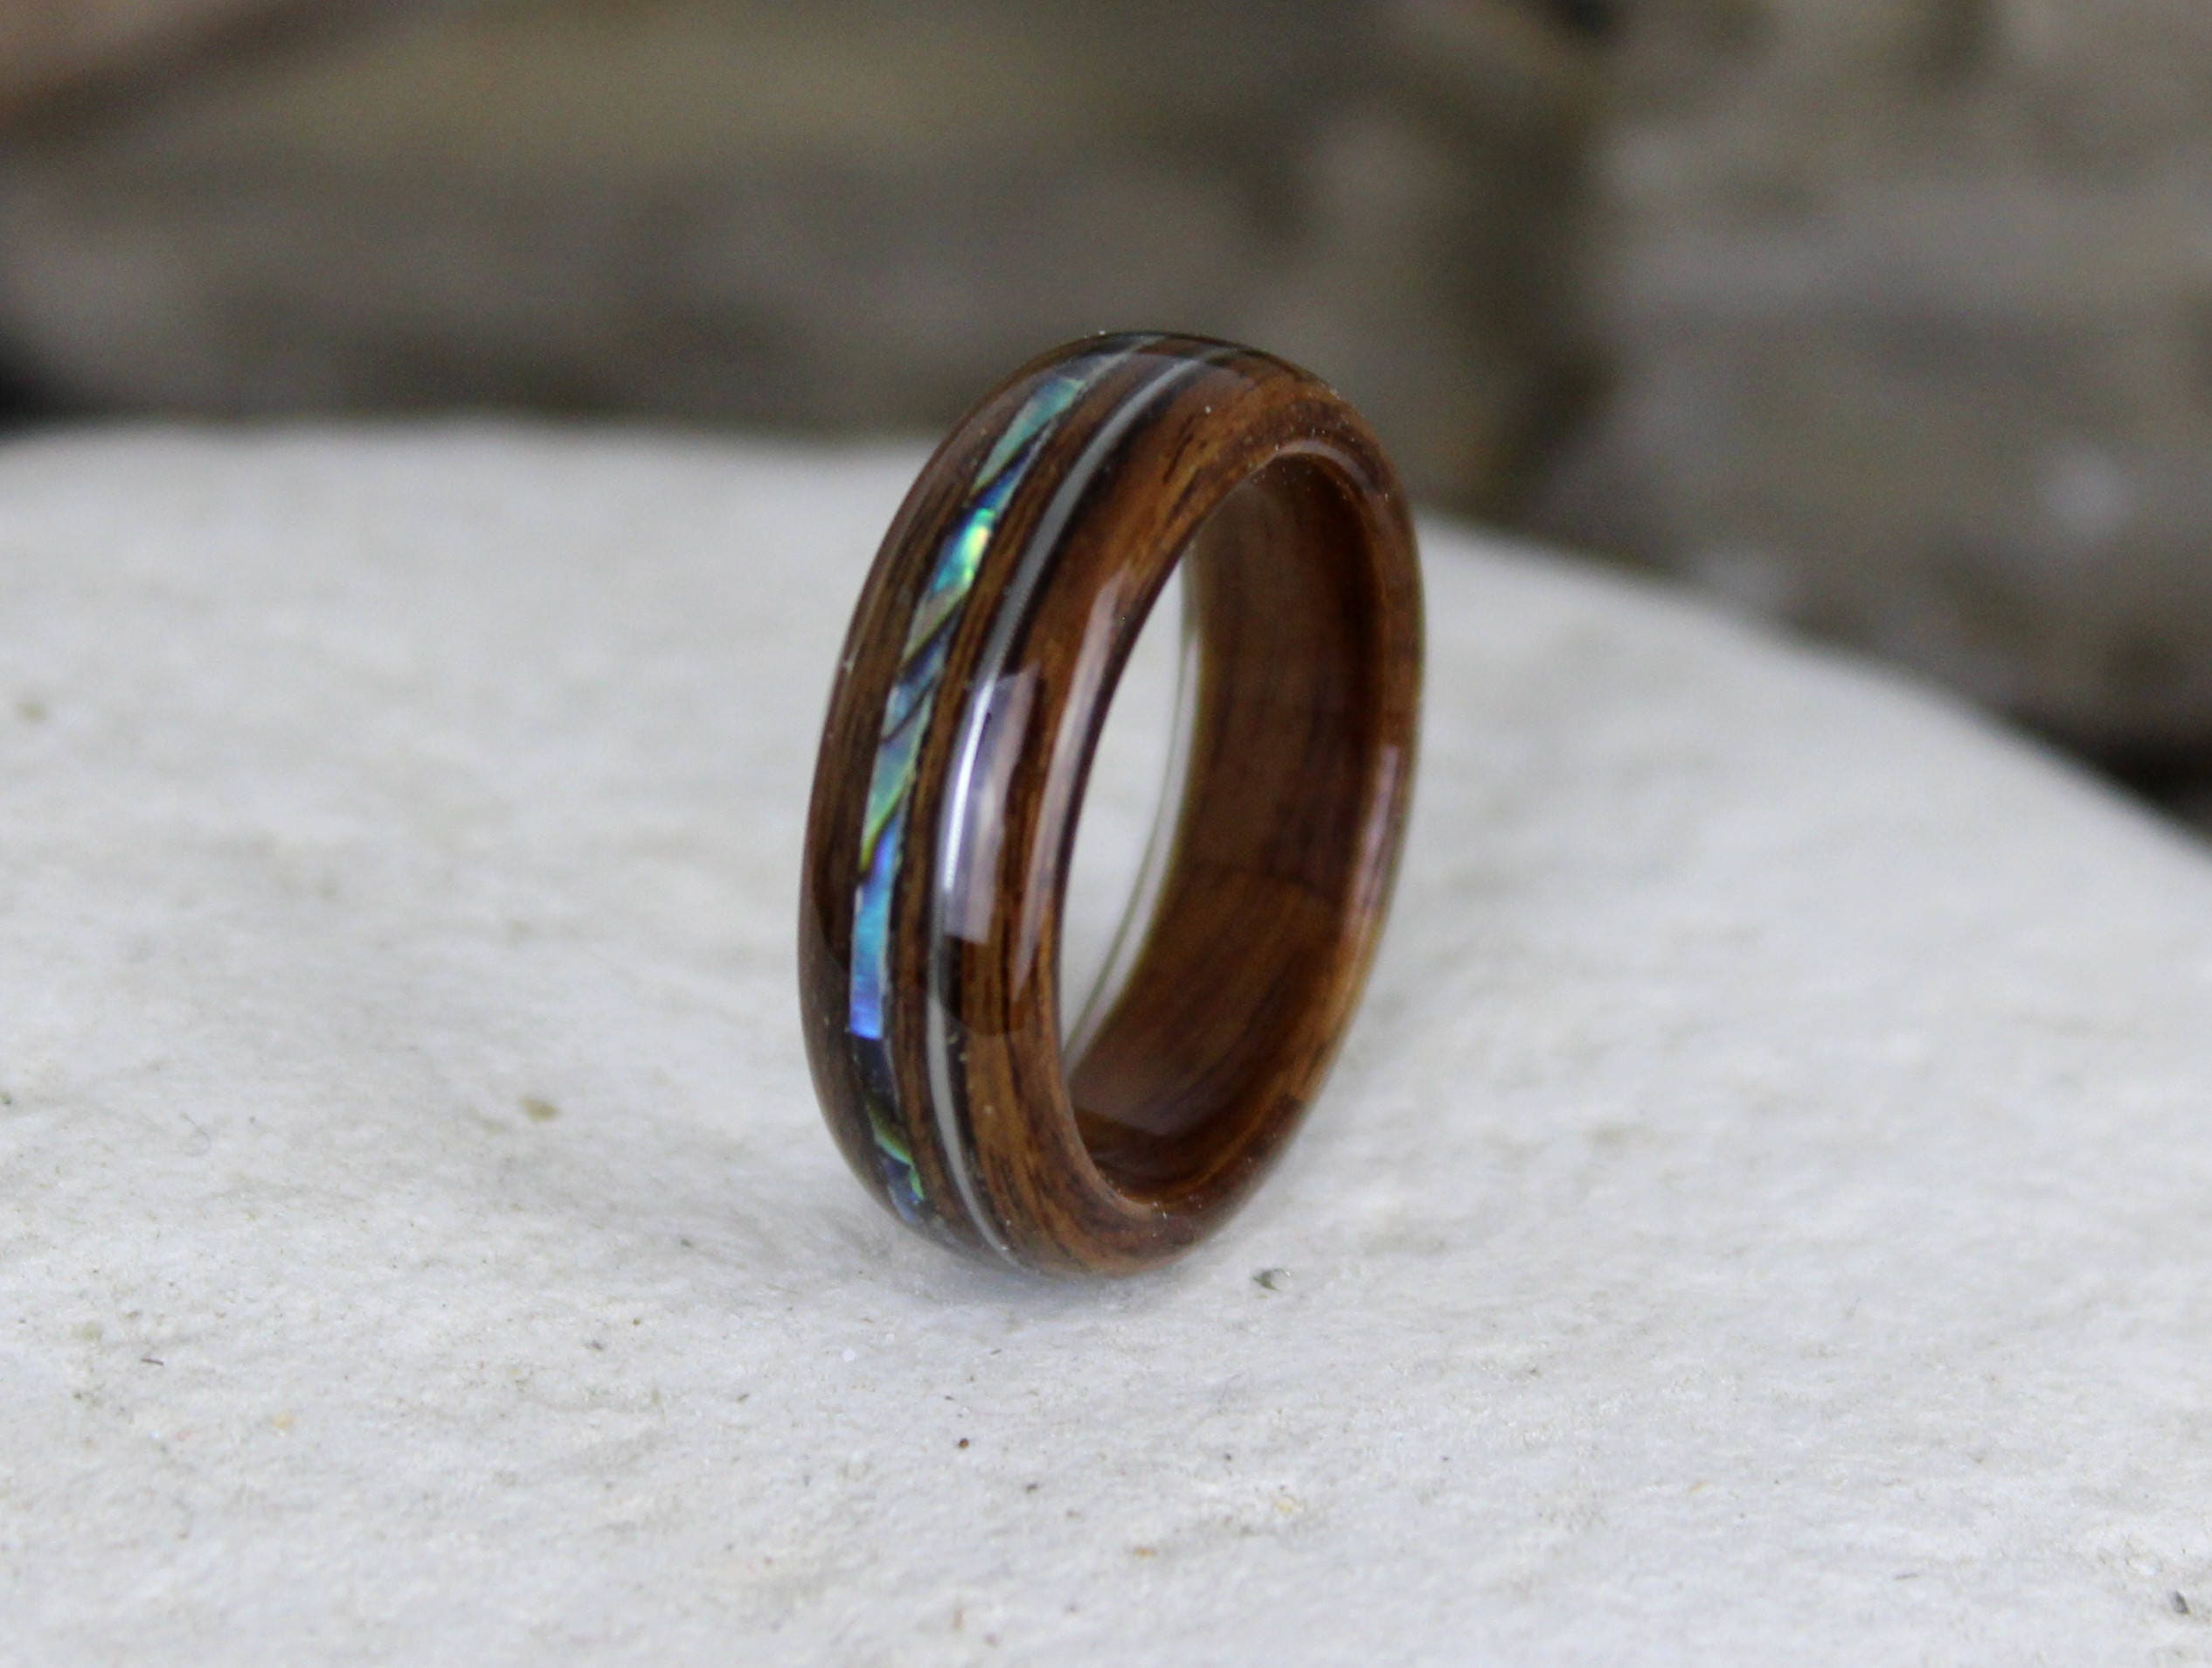 ring by and products abalone wood antler set johan with sq edit img rings jewelry turquoise wedding